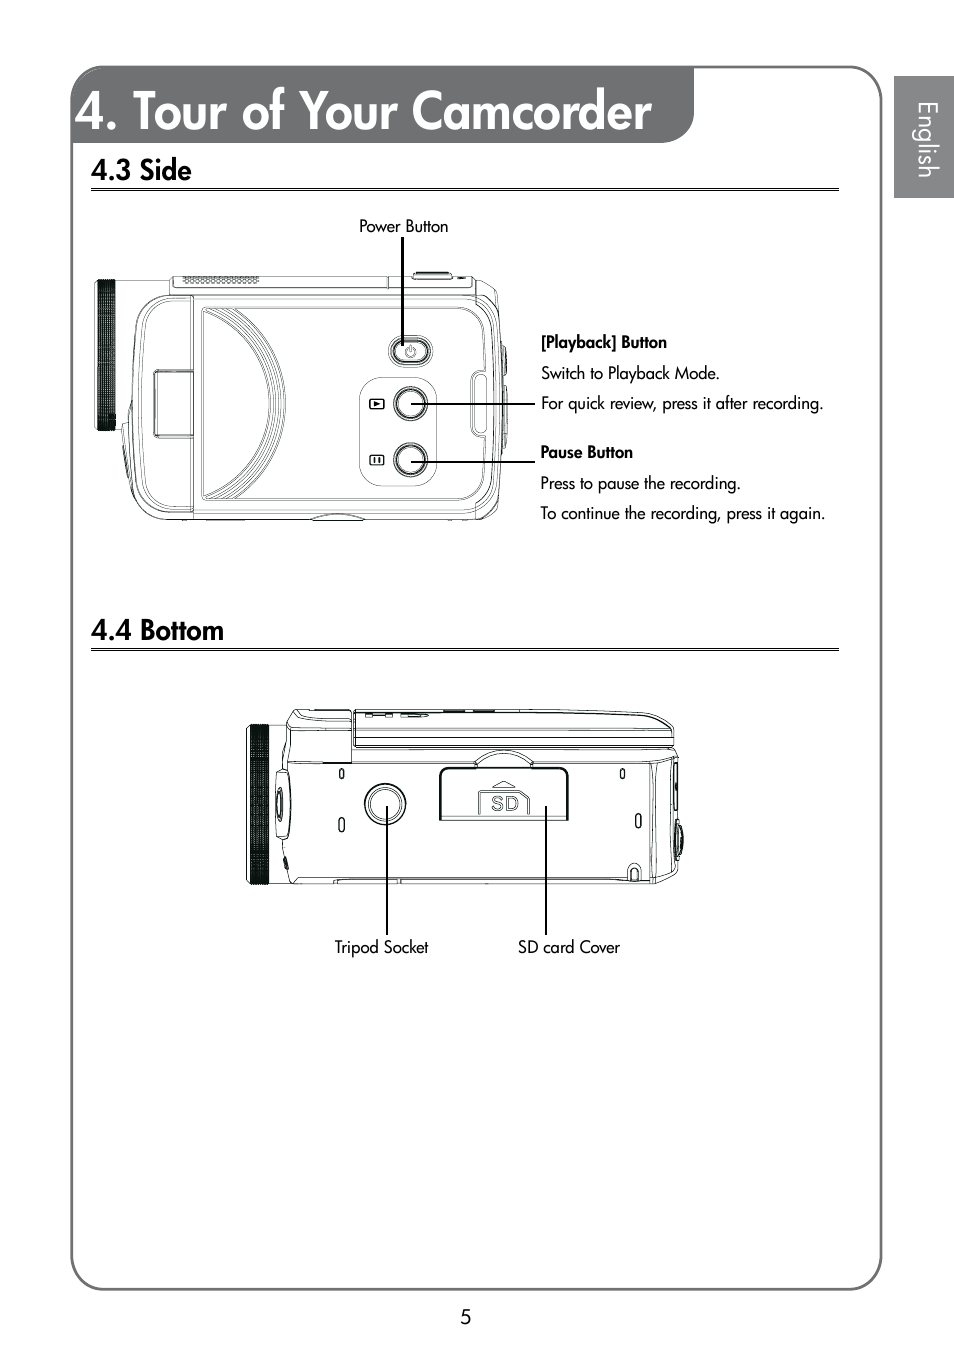 tour of your camcorder hp t200 user manual page 7 10 rh manualsdir com HP T200 Printer HP T200 Printer